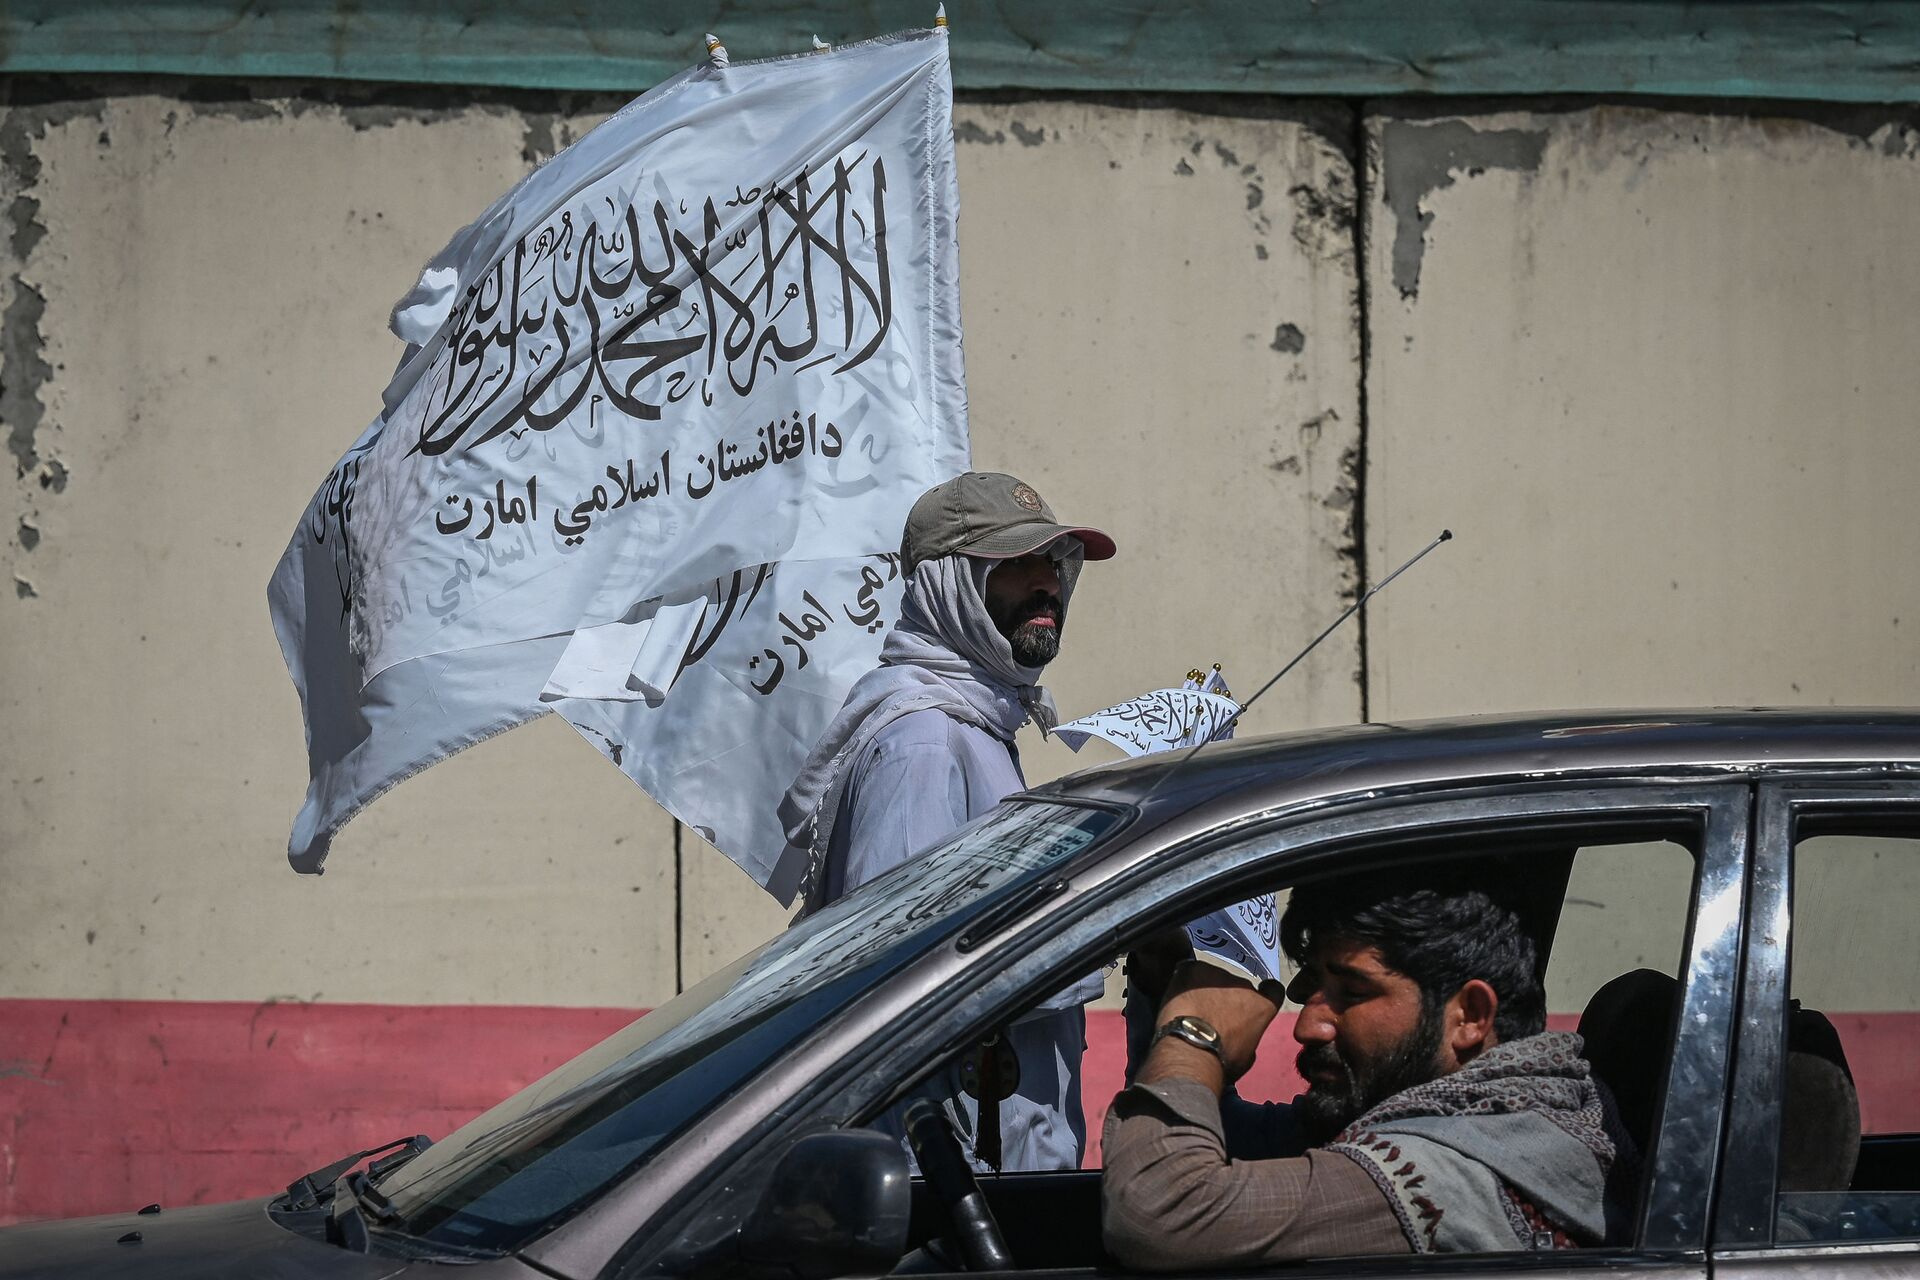 A mobile hawker carries Taliban flags as commuters make their way along a road in Kabul on September 5, 2021.  - Sputnik International, 1920, 07.09.2021